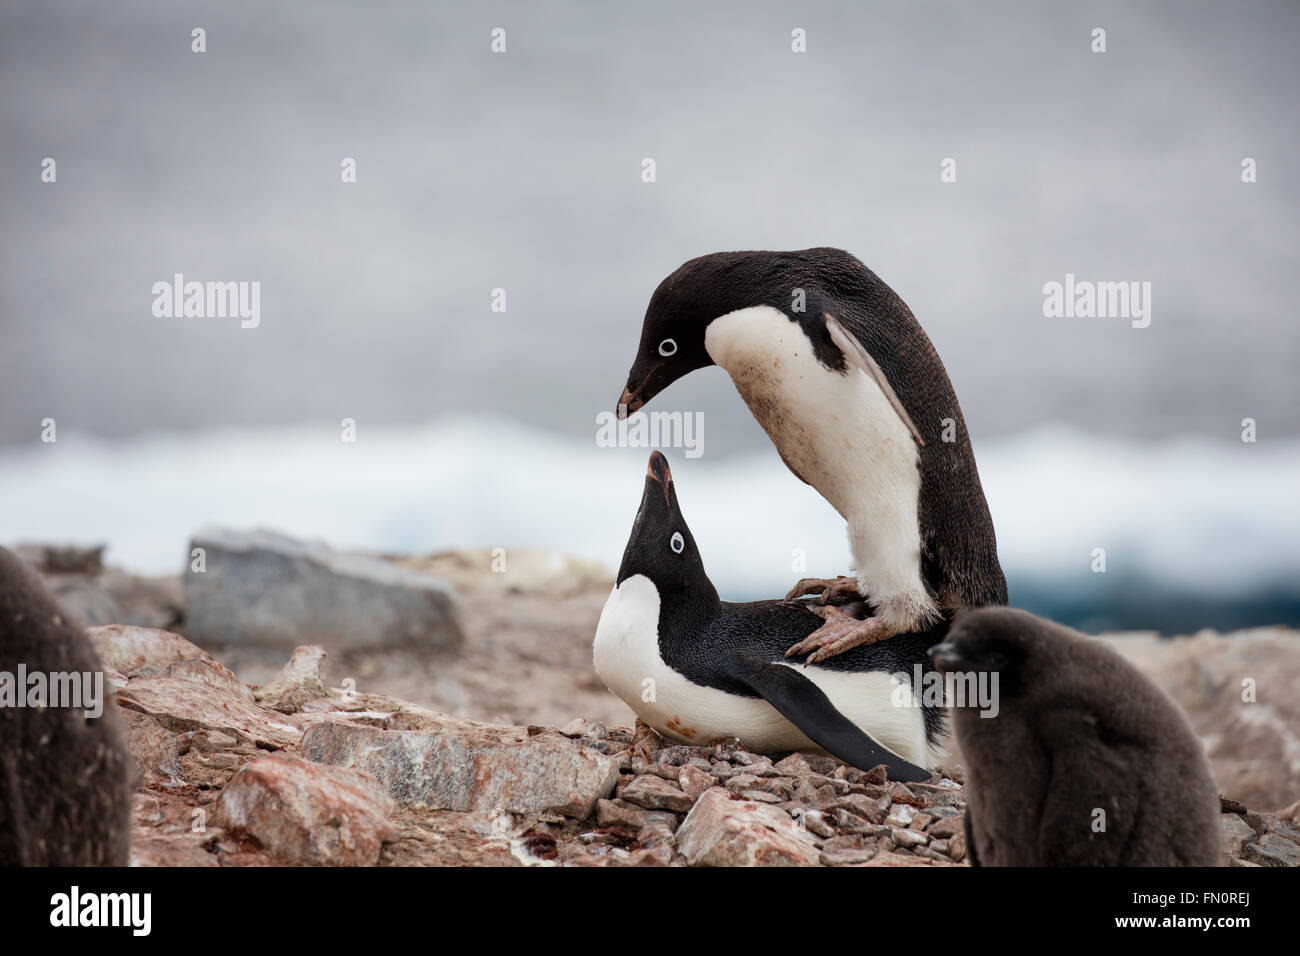 L'antarctique, péninsule Antarctique, l'Île Petermann, Adelie penguin, paire d'accouplement Photo Stock